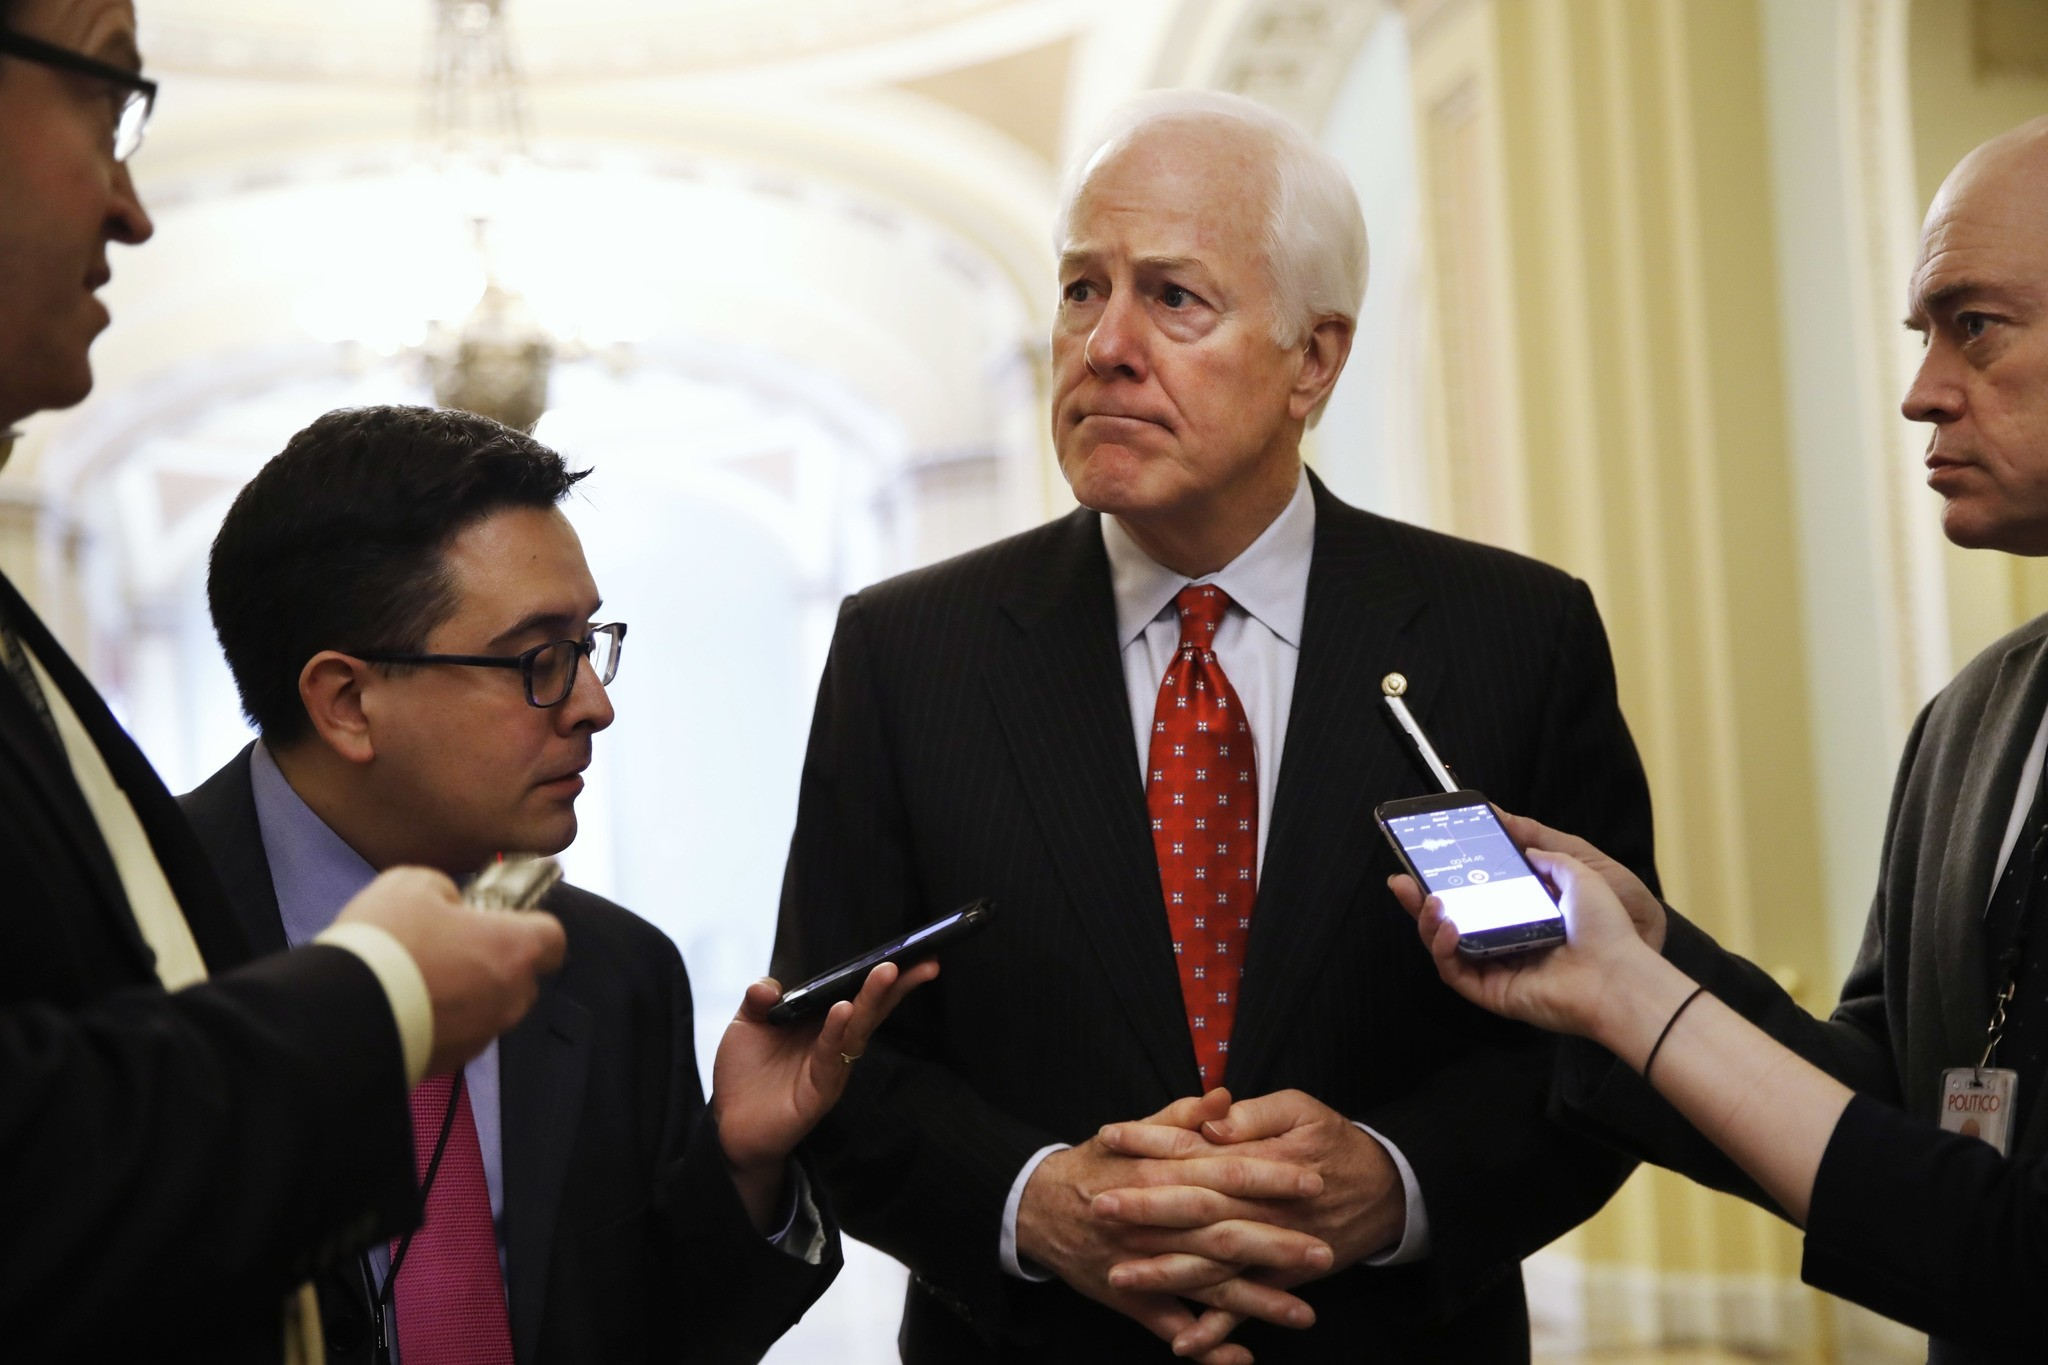 Senate Majority Whip John Cornyn of Texas talks with reporters on Capitol Hill in Washington. (AP Photo)